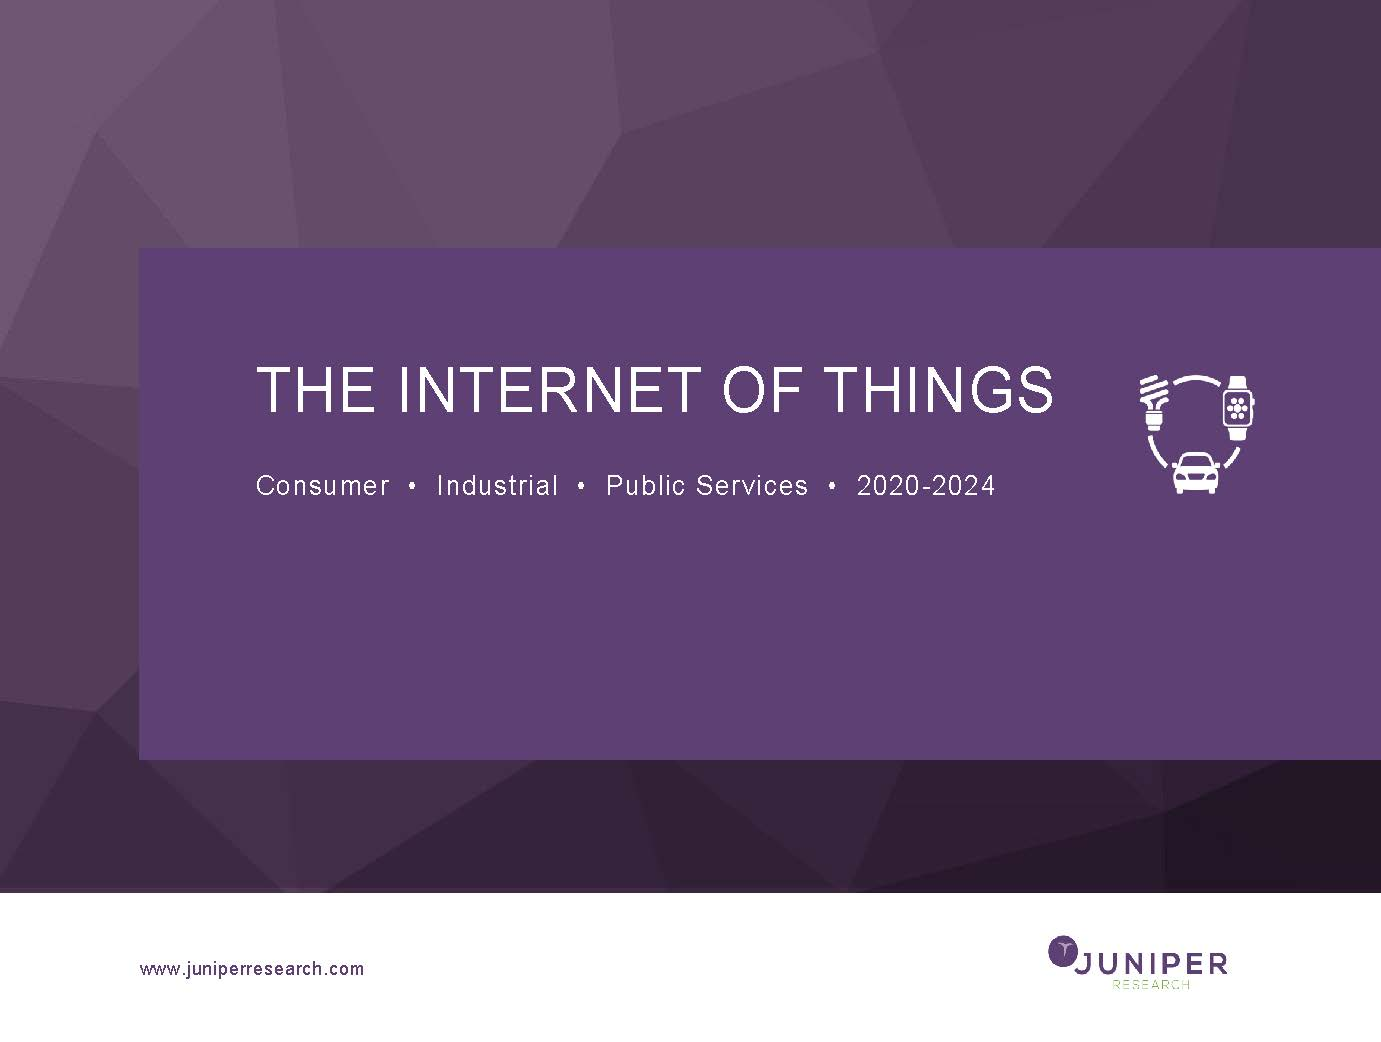 The Internet of Things: Consumer, Industrial & Public Services 2020-2024